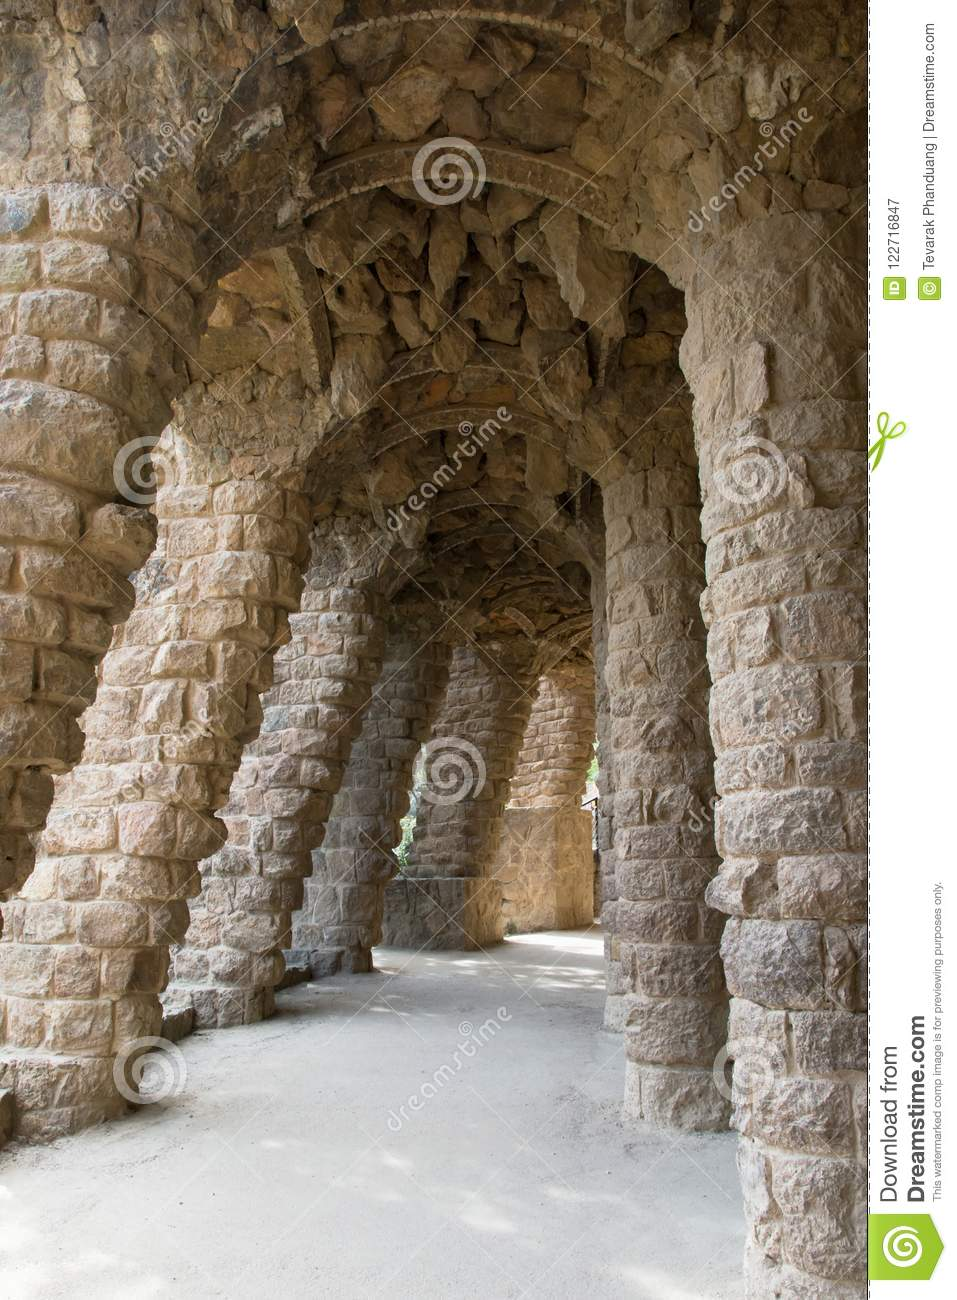 The Architecture of Antonio Gaudi inside Park Guell